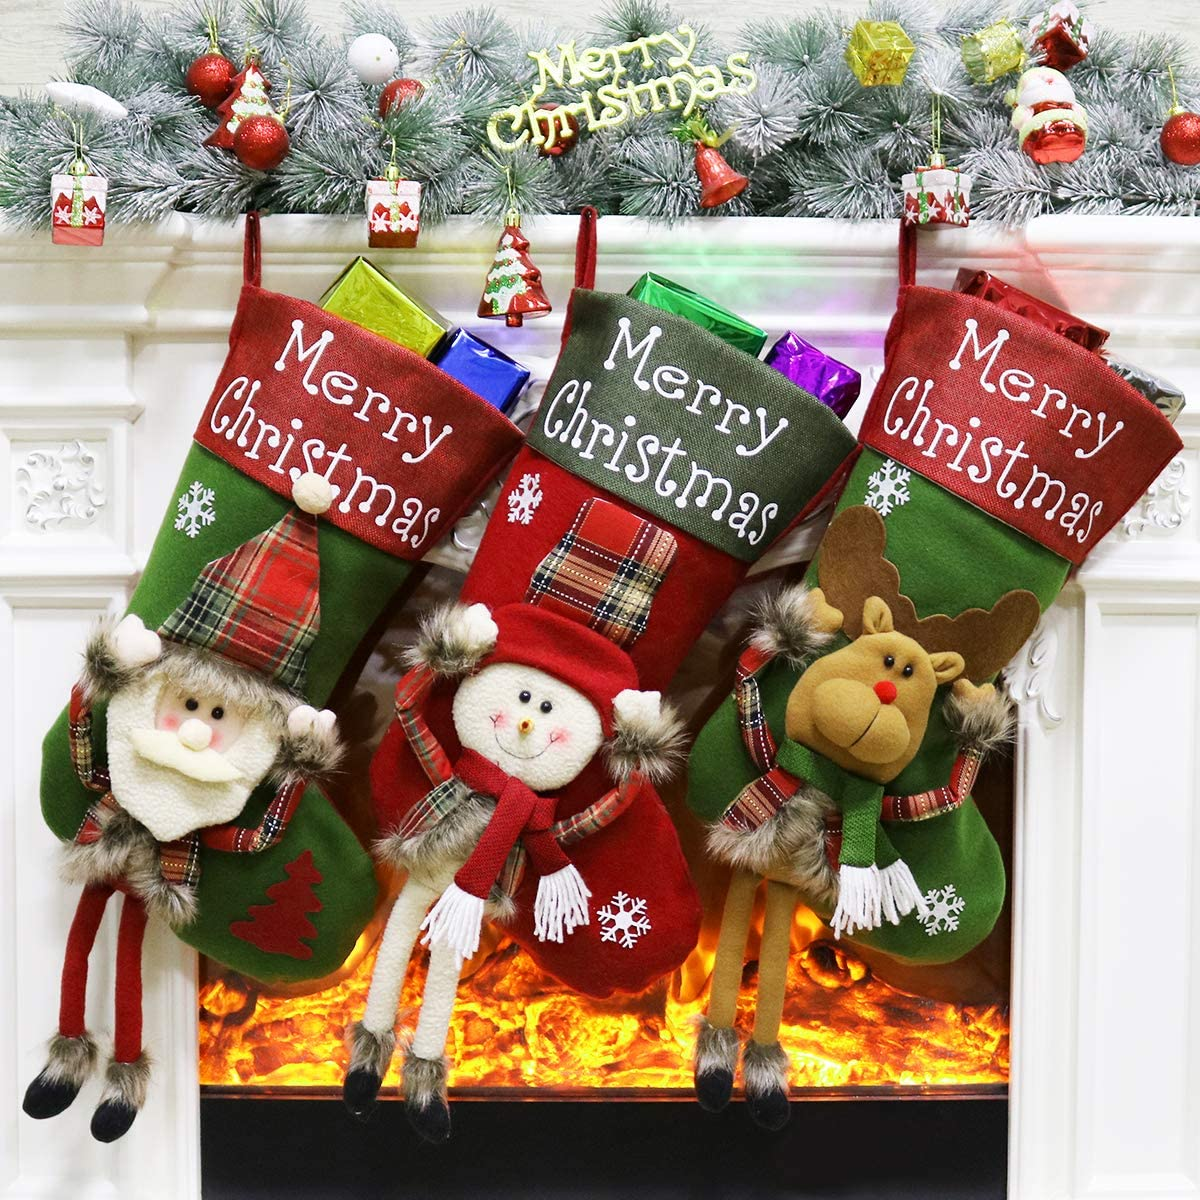 "Aitey Christmas Stocking, 18"" Big Stockings Set of 3 Xmas Character Santa, Snowman, Reindeer 3D Plush Christmas Home Decorations and Party Accessory for Kids (Long Leg)"